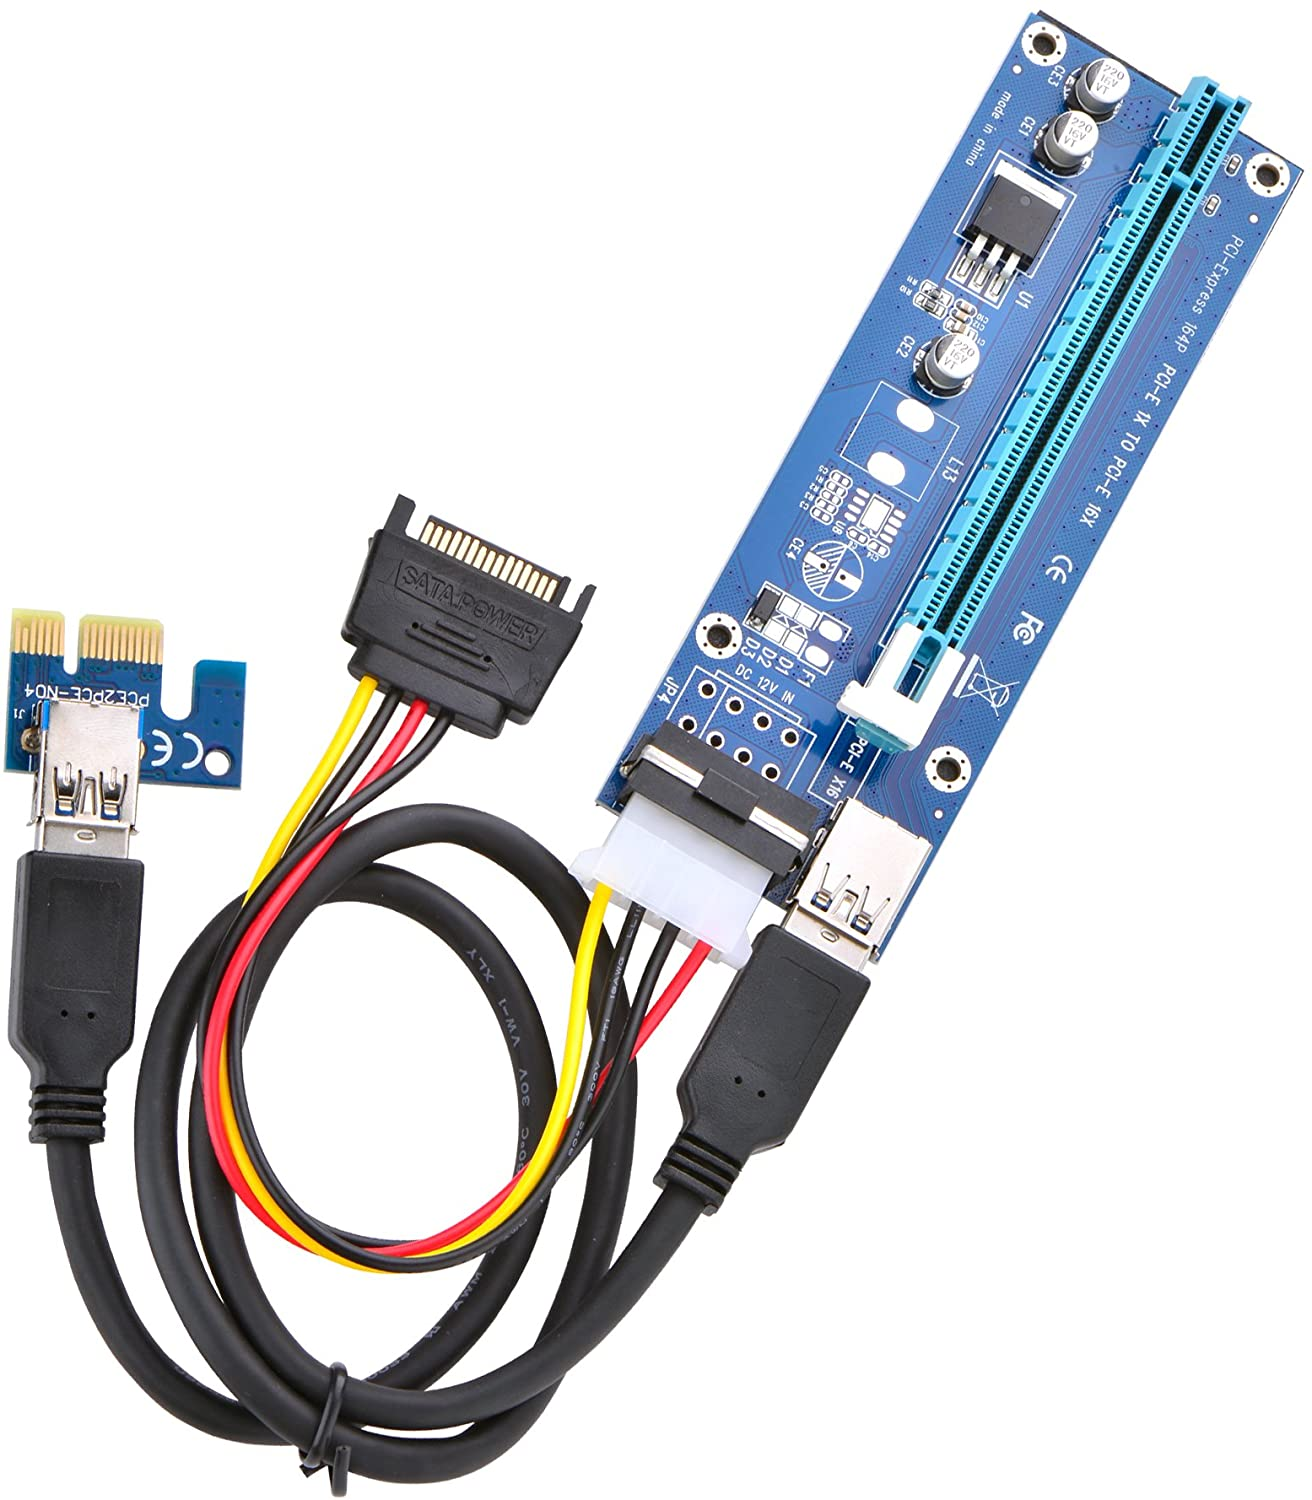 Optimal Shop PCI Express 16x to 1x Powered Riser Adapter Card w/60cm USB 3.0 Extension Cable and 4-Pin MOLEX to SATA Power Cable-GPU Riser Extender Cable-Ethereum Mining ETH (1 Pack 4 Pin)